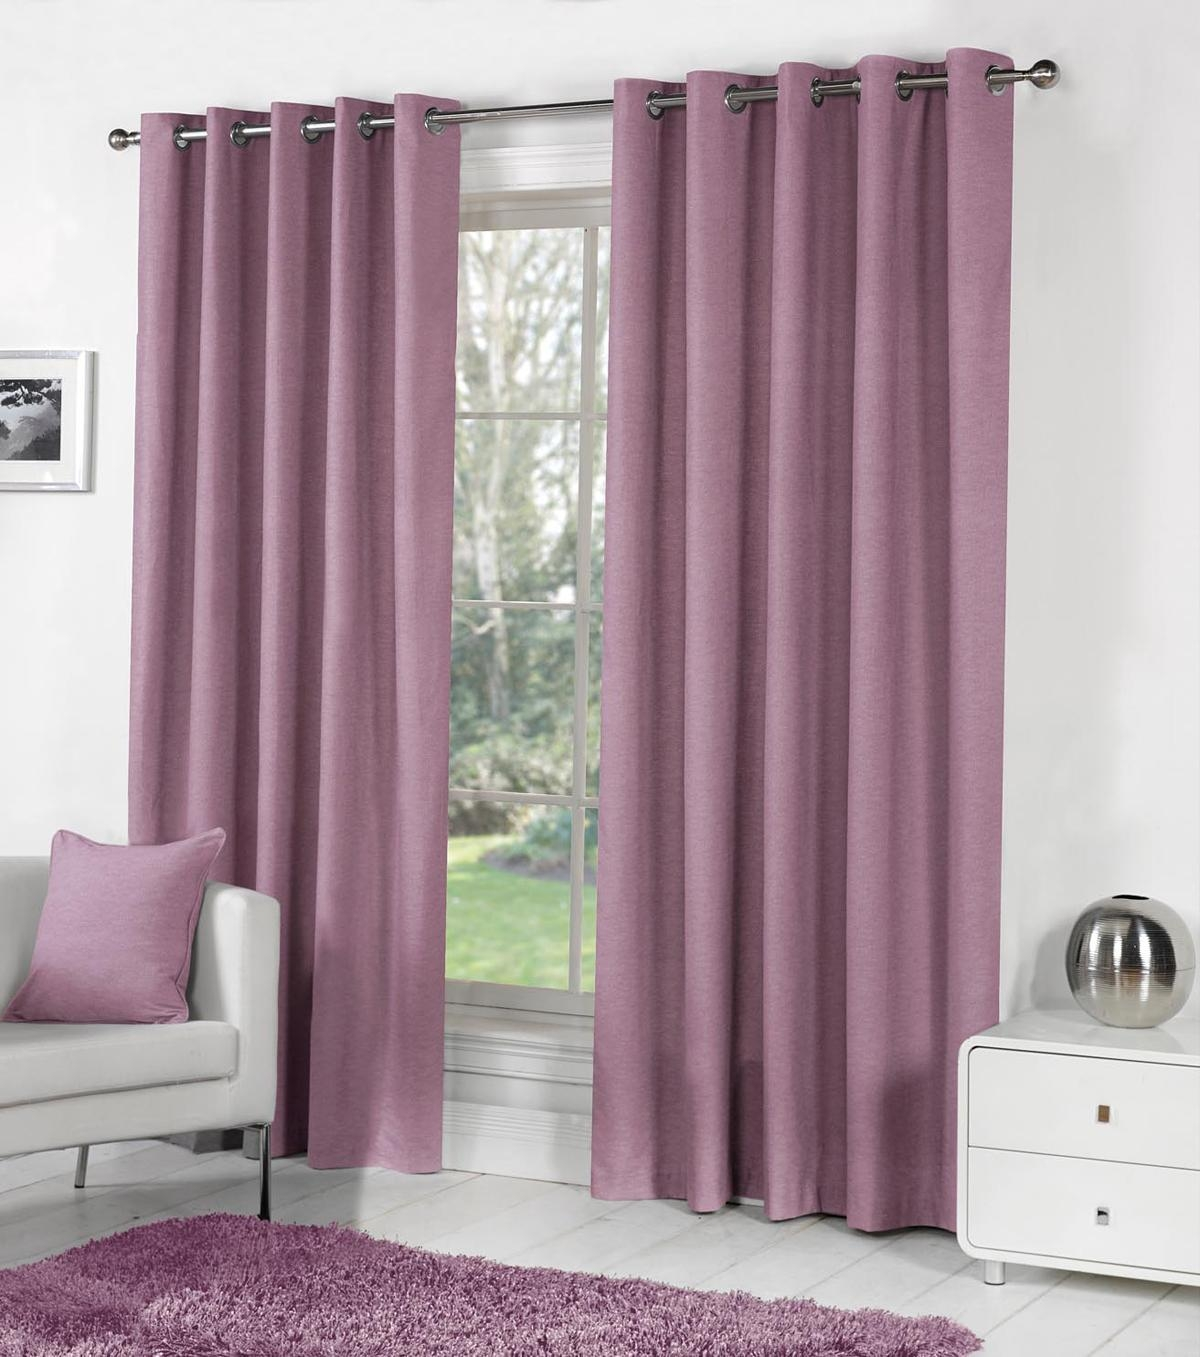 18 24 Inch Curtain Rods 25 Collection Of 54 Inch Long Curtain Panels Curtain Ideas